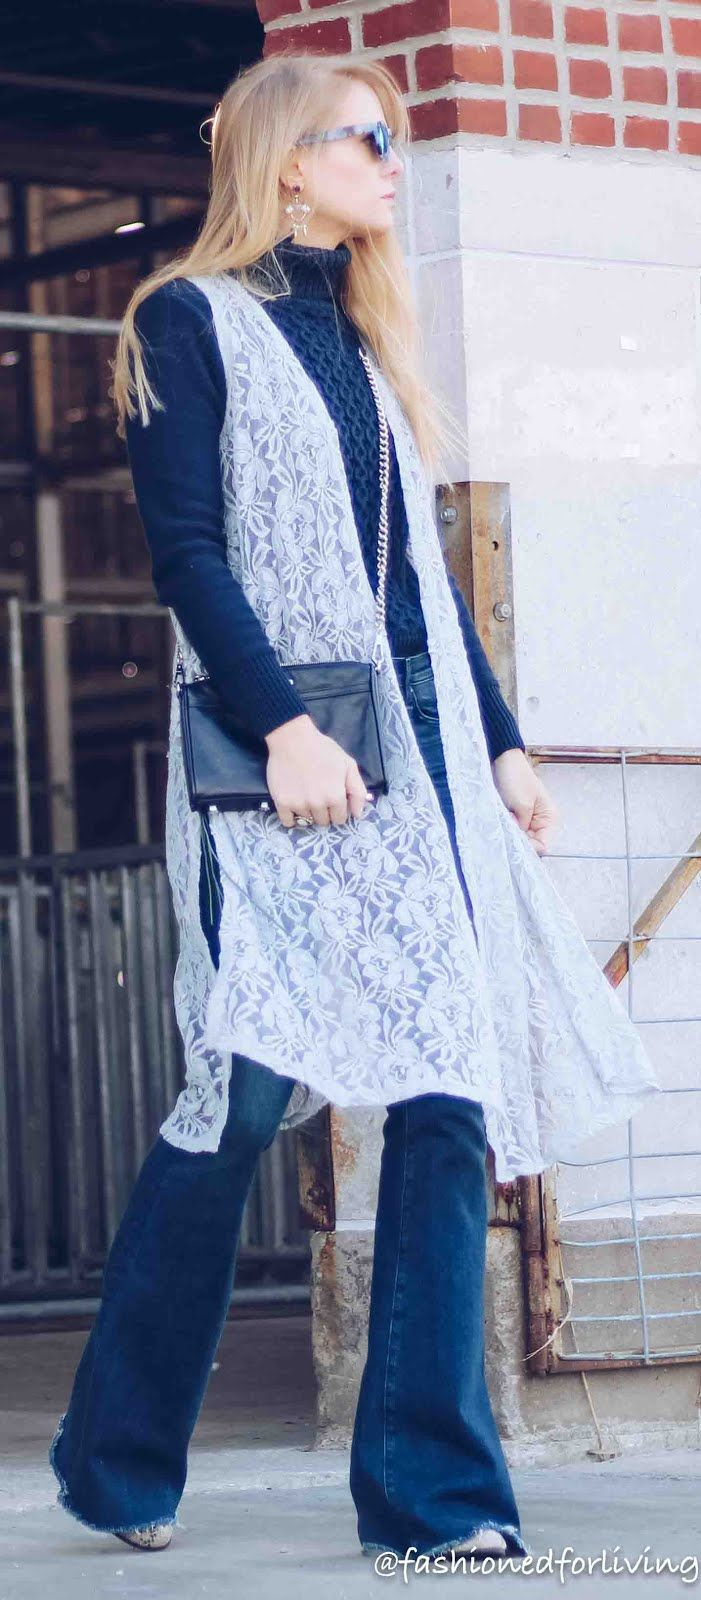 flare jeans outfit with lace vest and navy turtleneck lularoe lace joy outfit